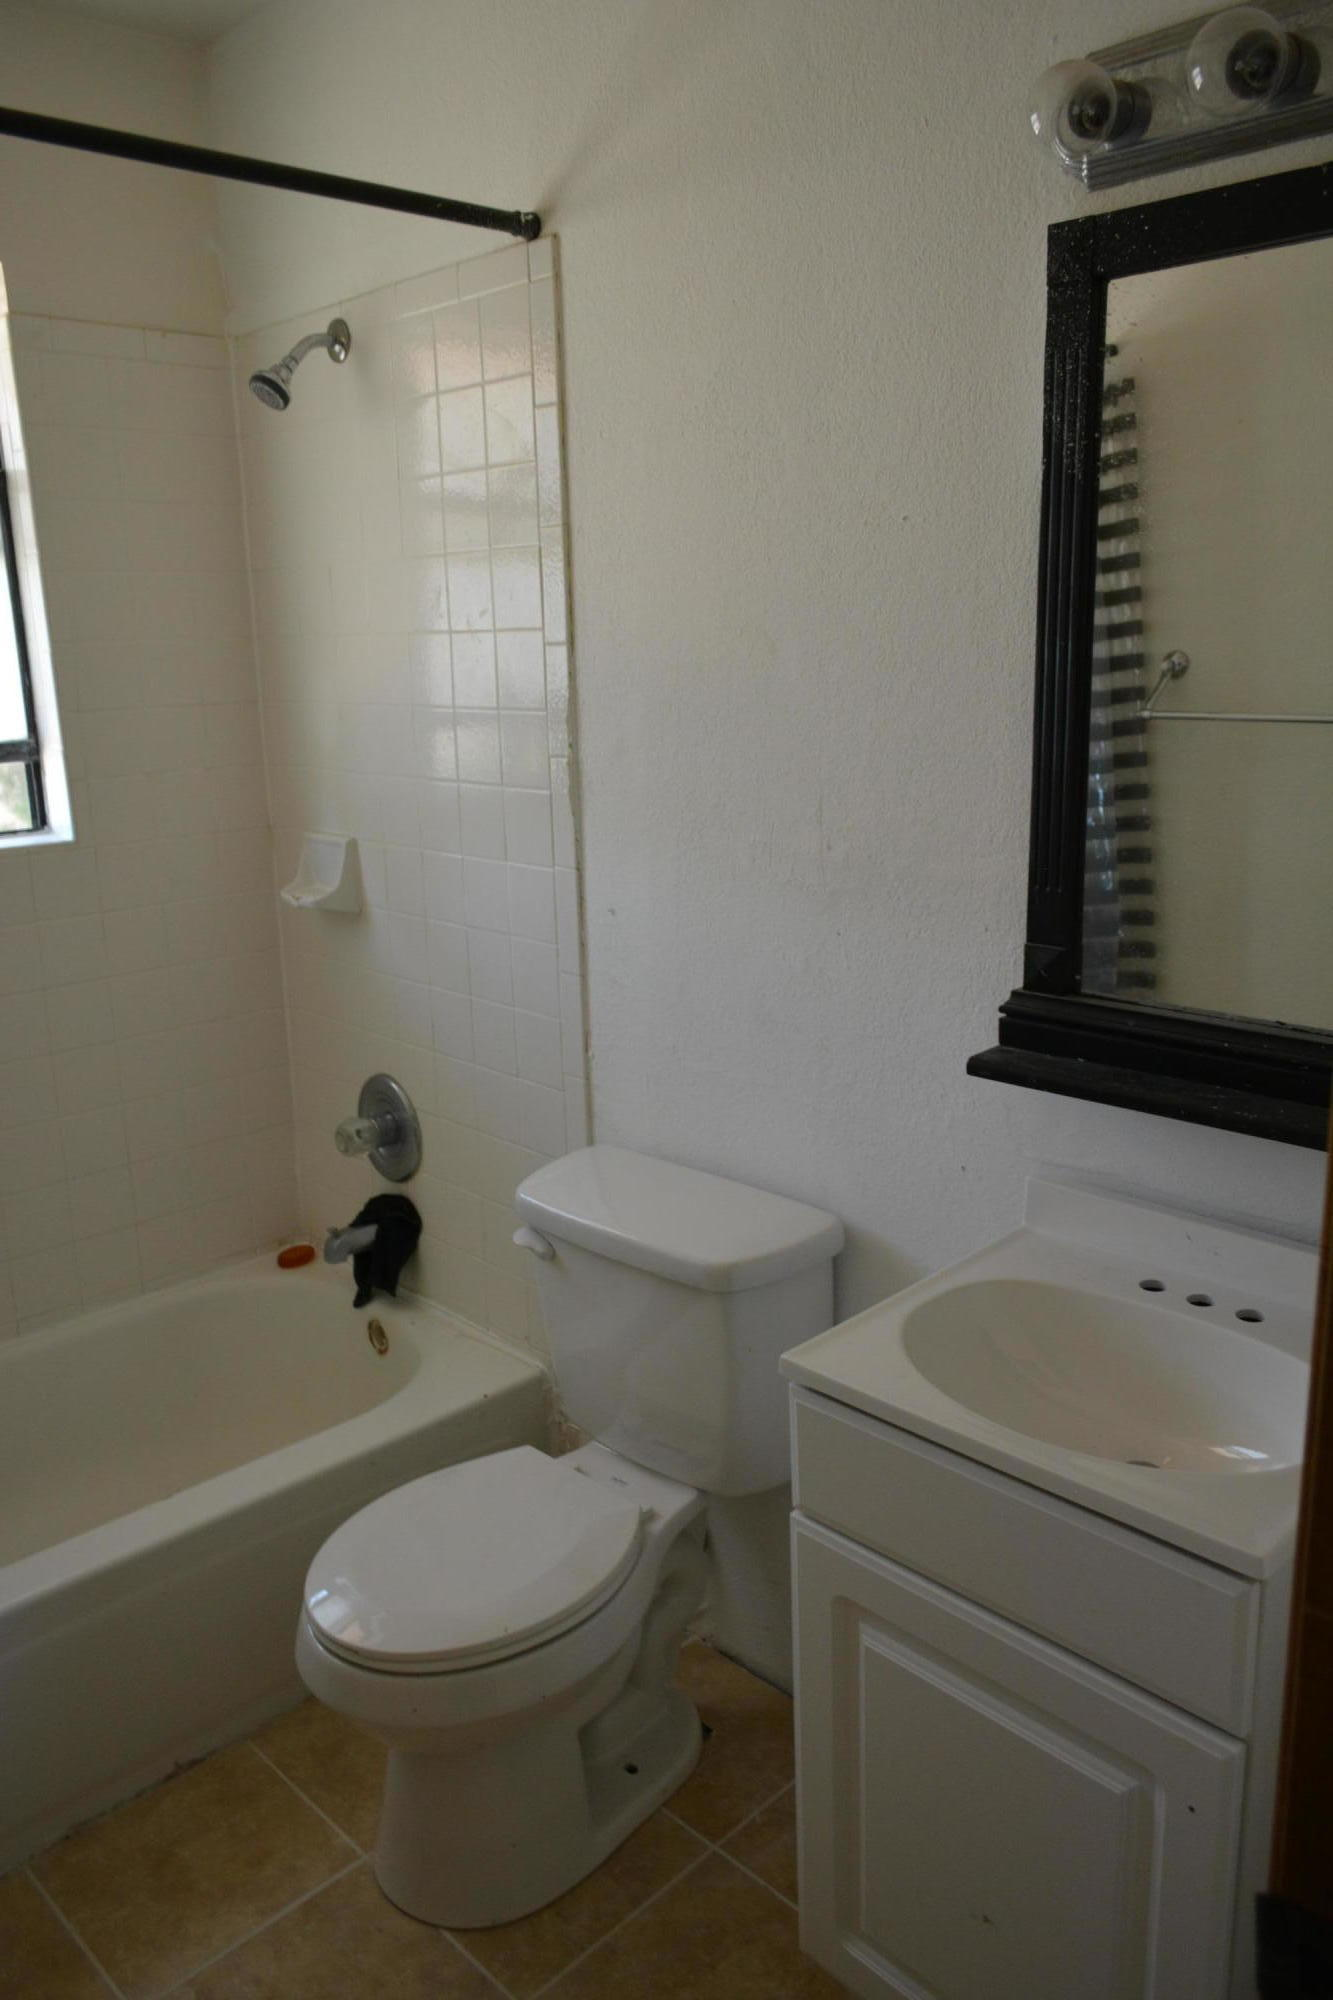 1848 Polly Harris- Up stairs bathroom